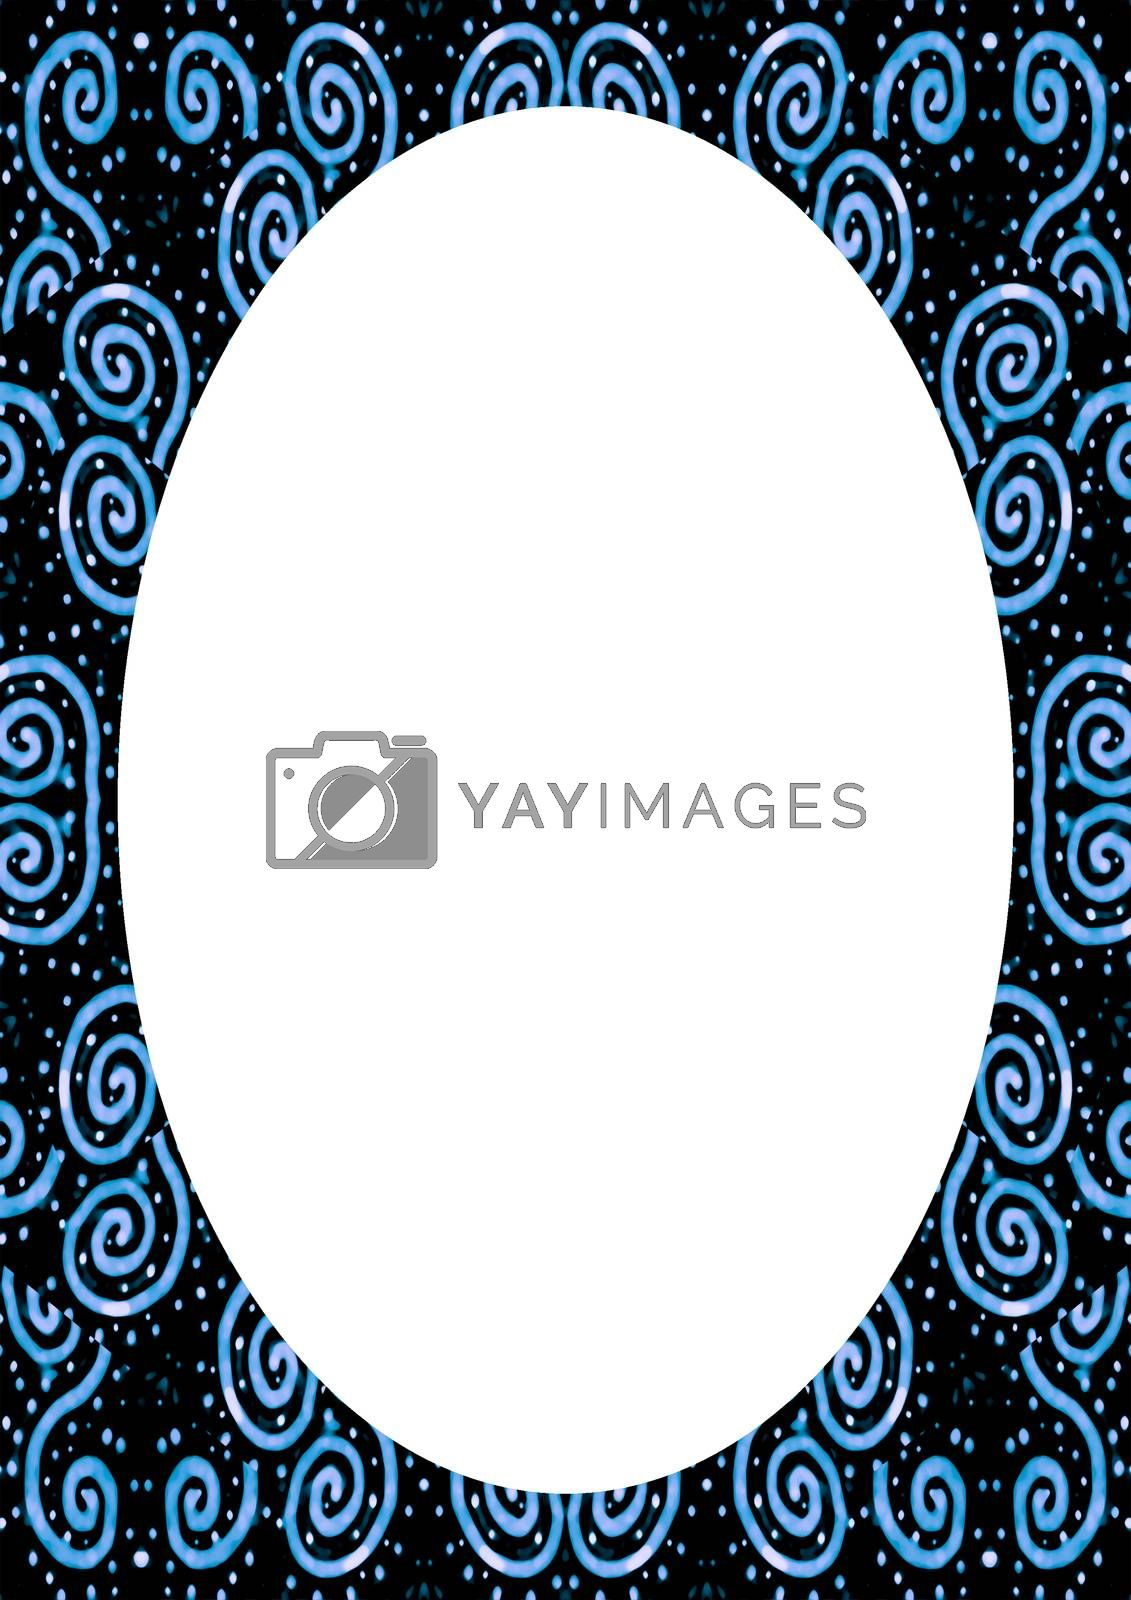 White Background with Decorated Design Rounded Borders by DanFLCreative